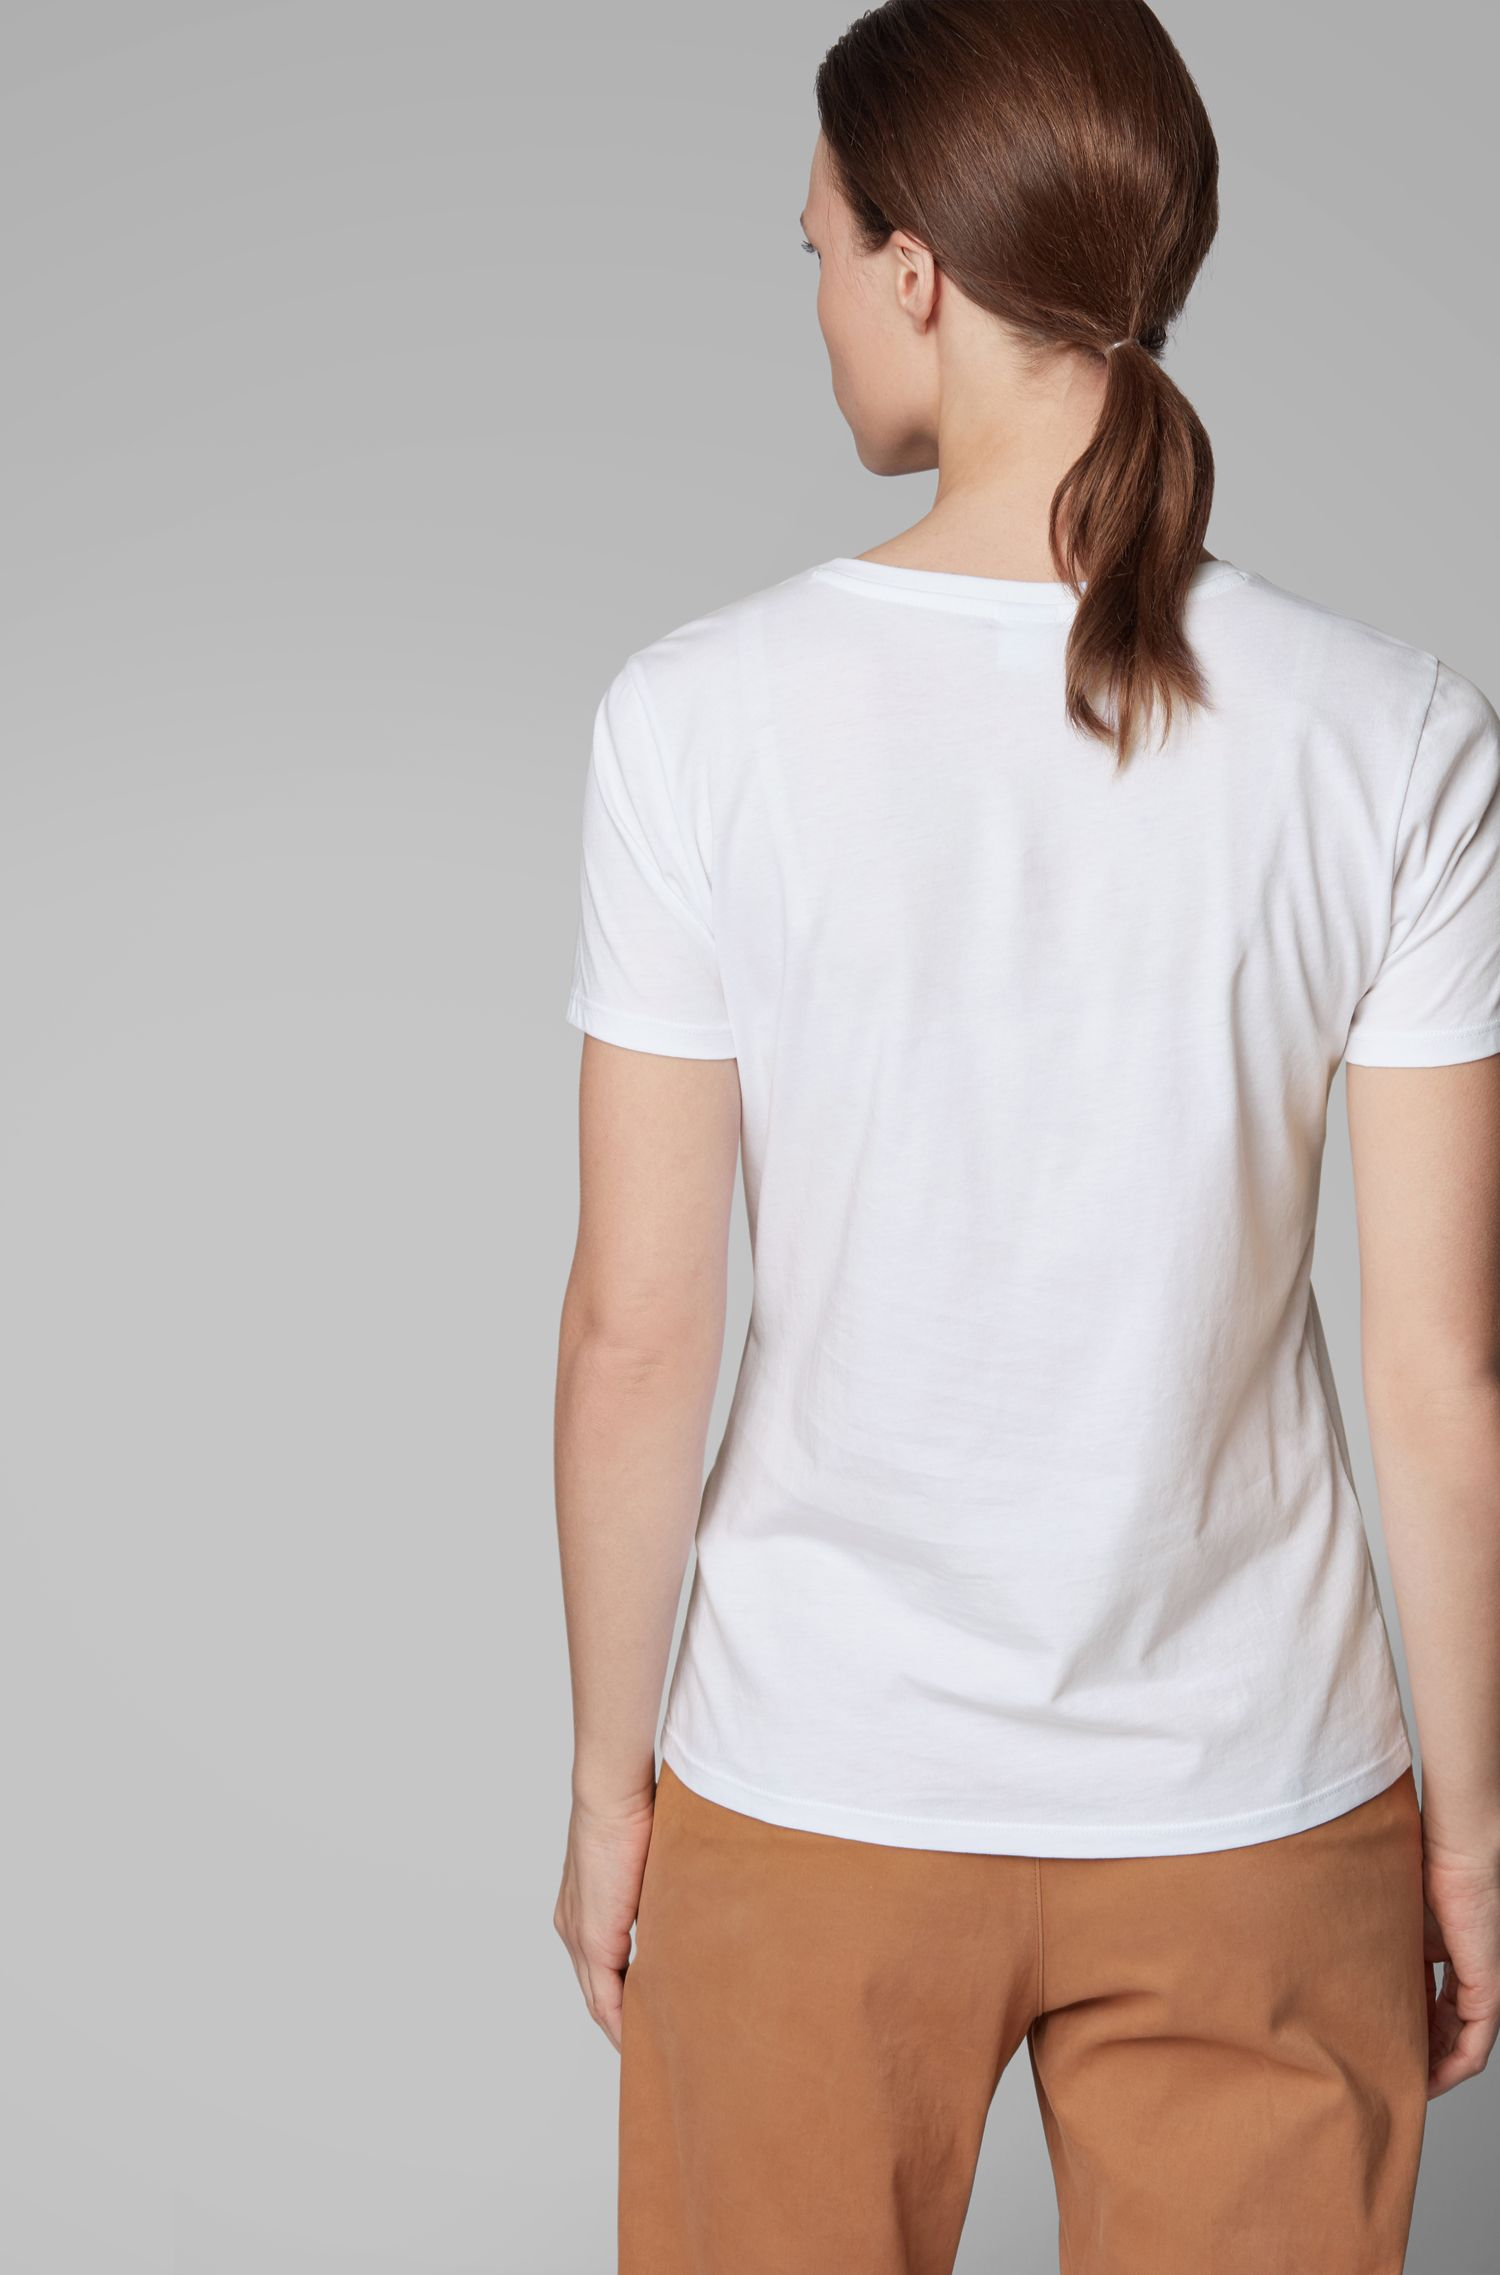 Crew-neck T-shirt in cotton with foil-print logo, White